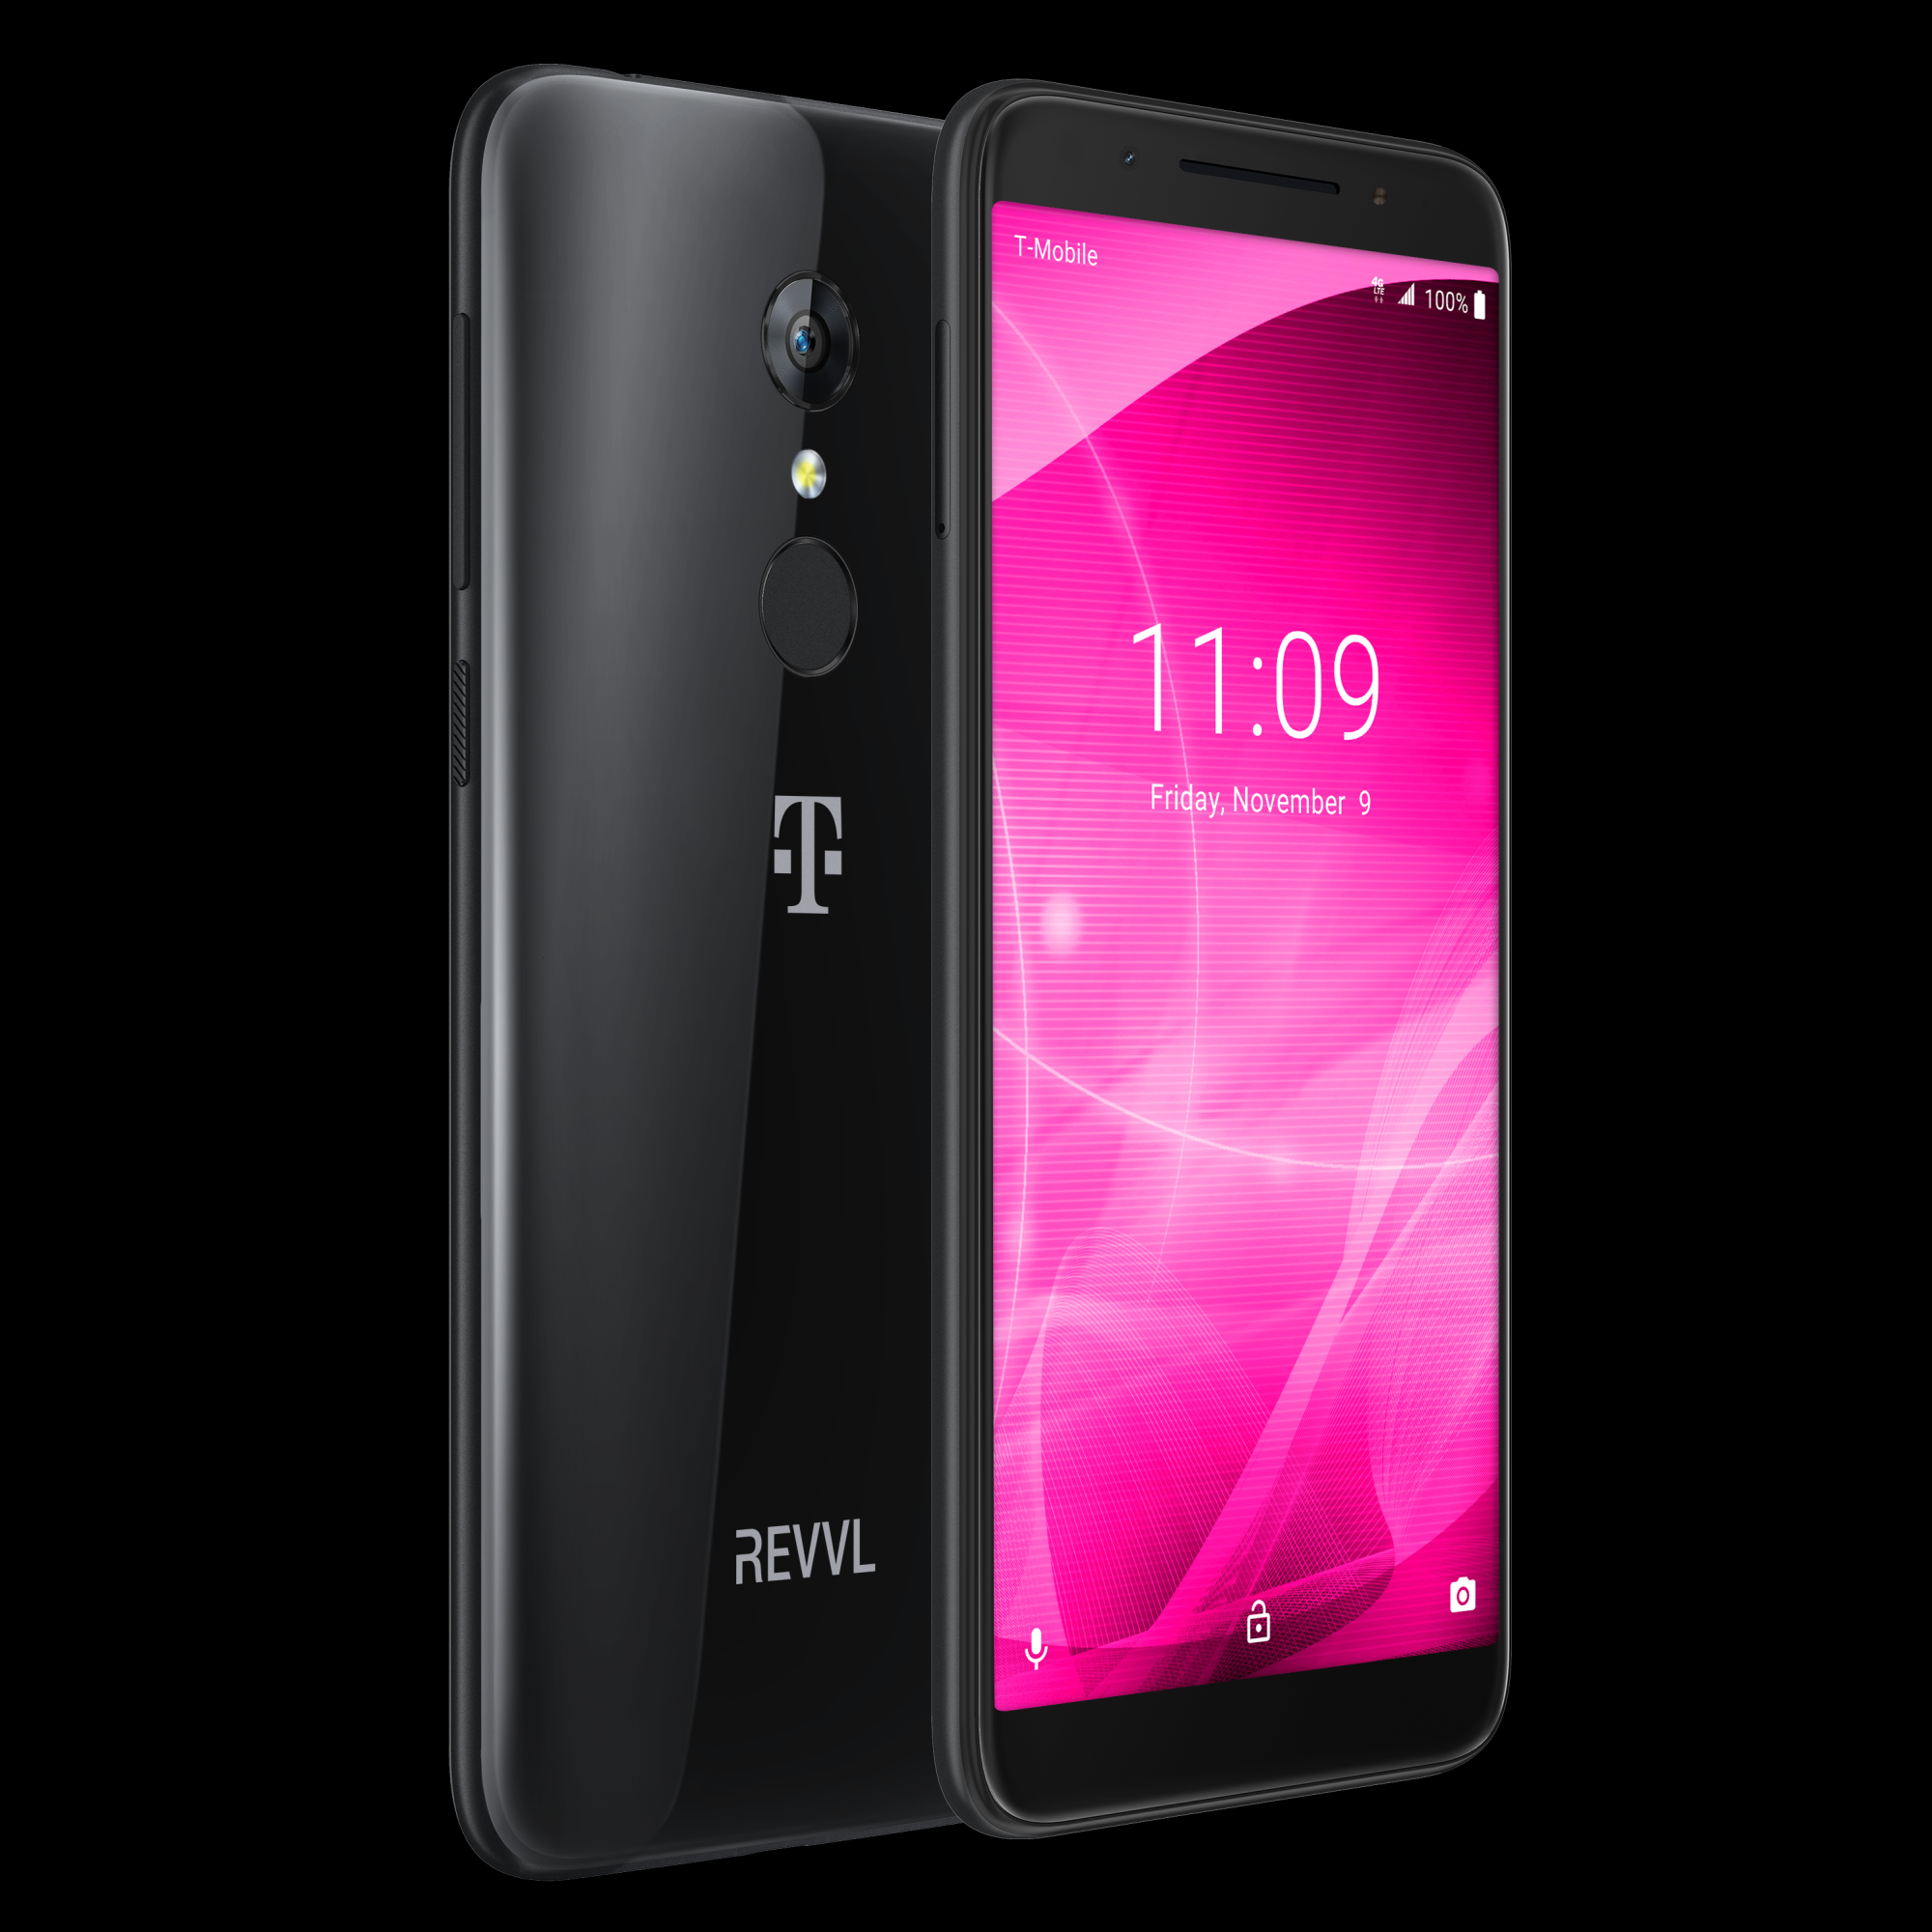 T-Mobile REVVL 2: All you need to know